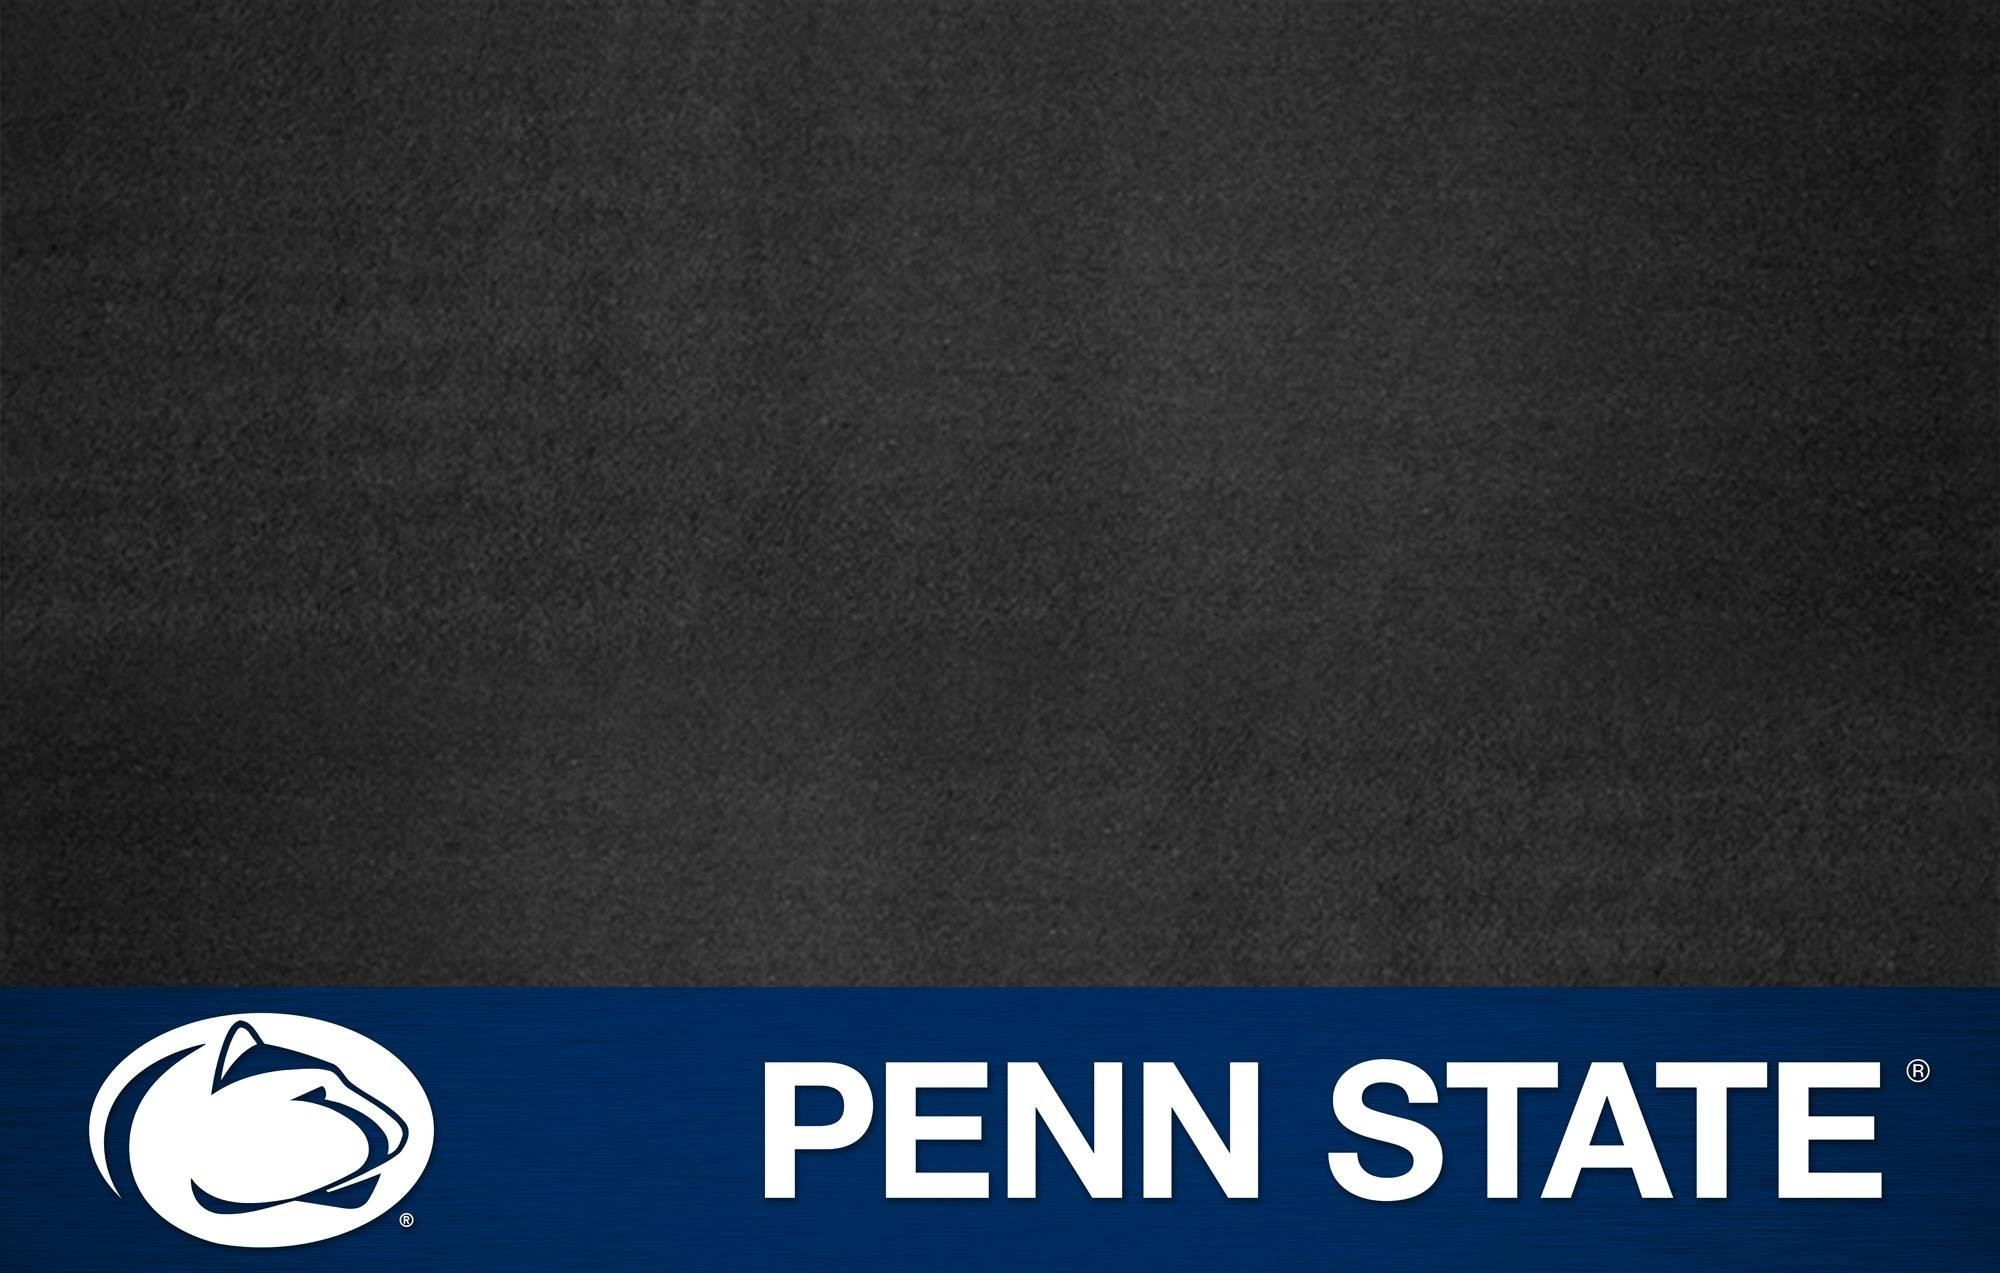 PENN STATE NITTANY LIONS college football wallpaper     595782    WallpaperUP